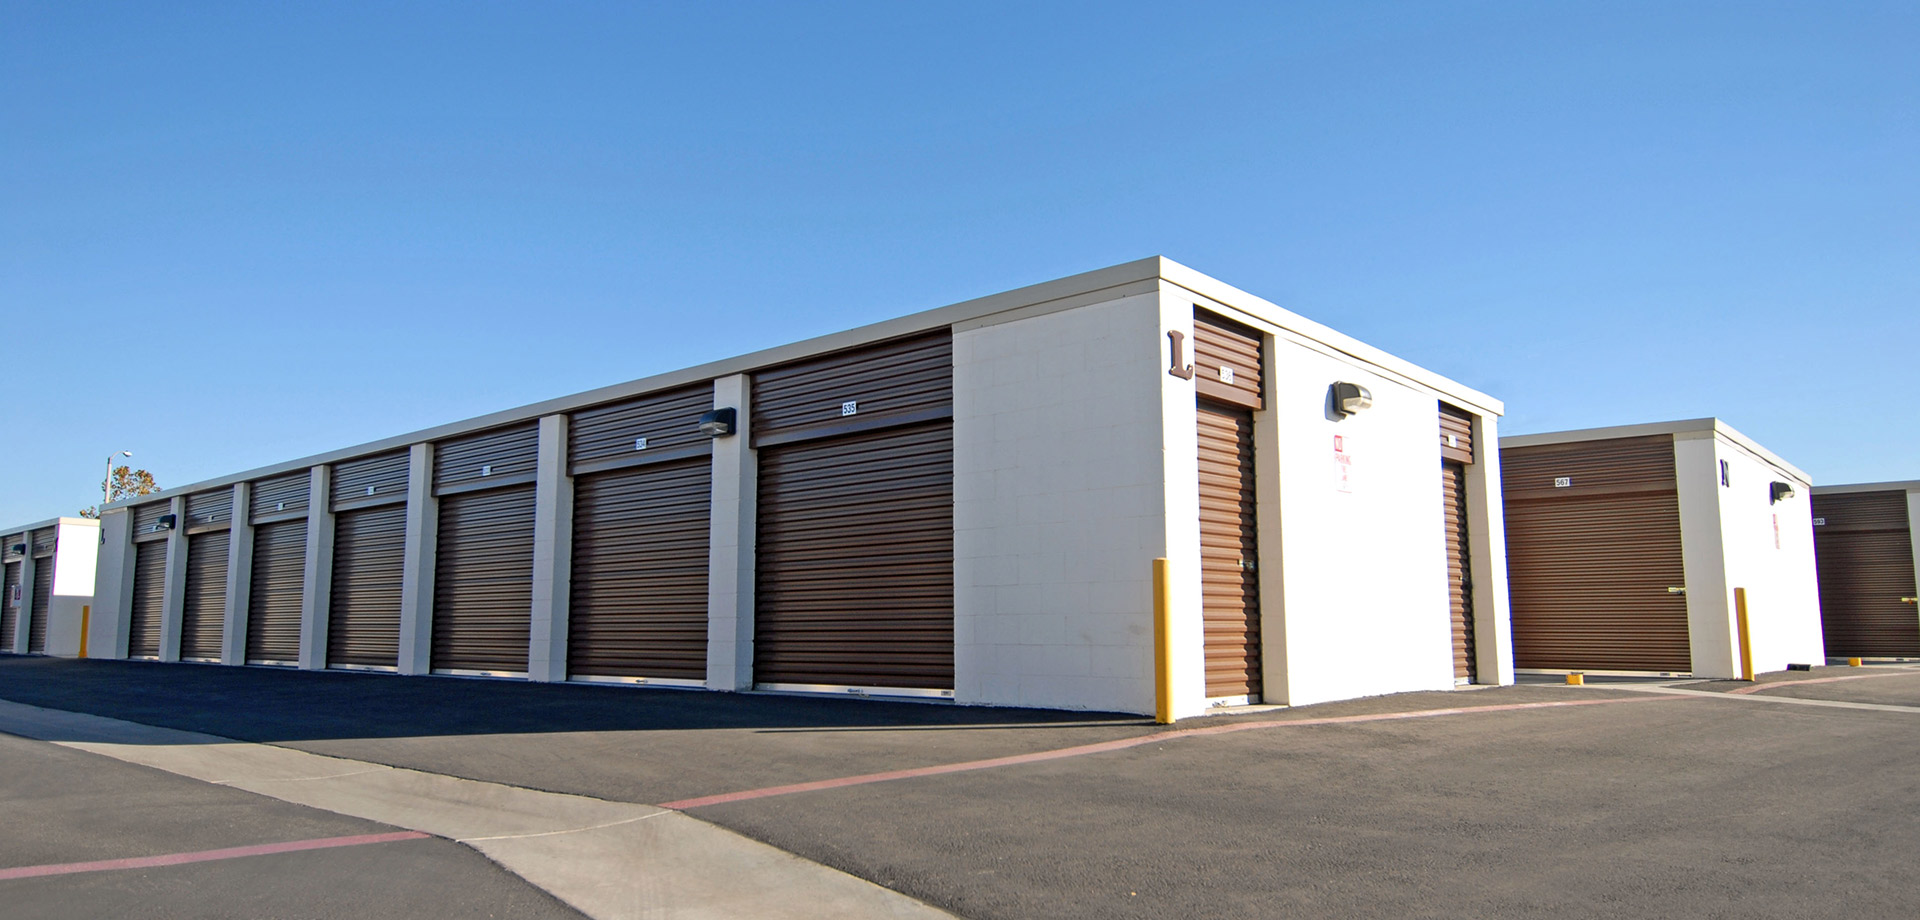 Merveilleux Welcome To Golden Triangle Self Storage